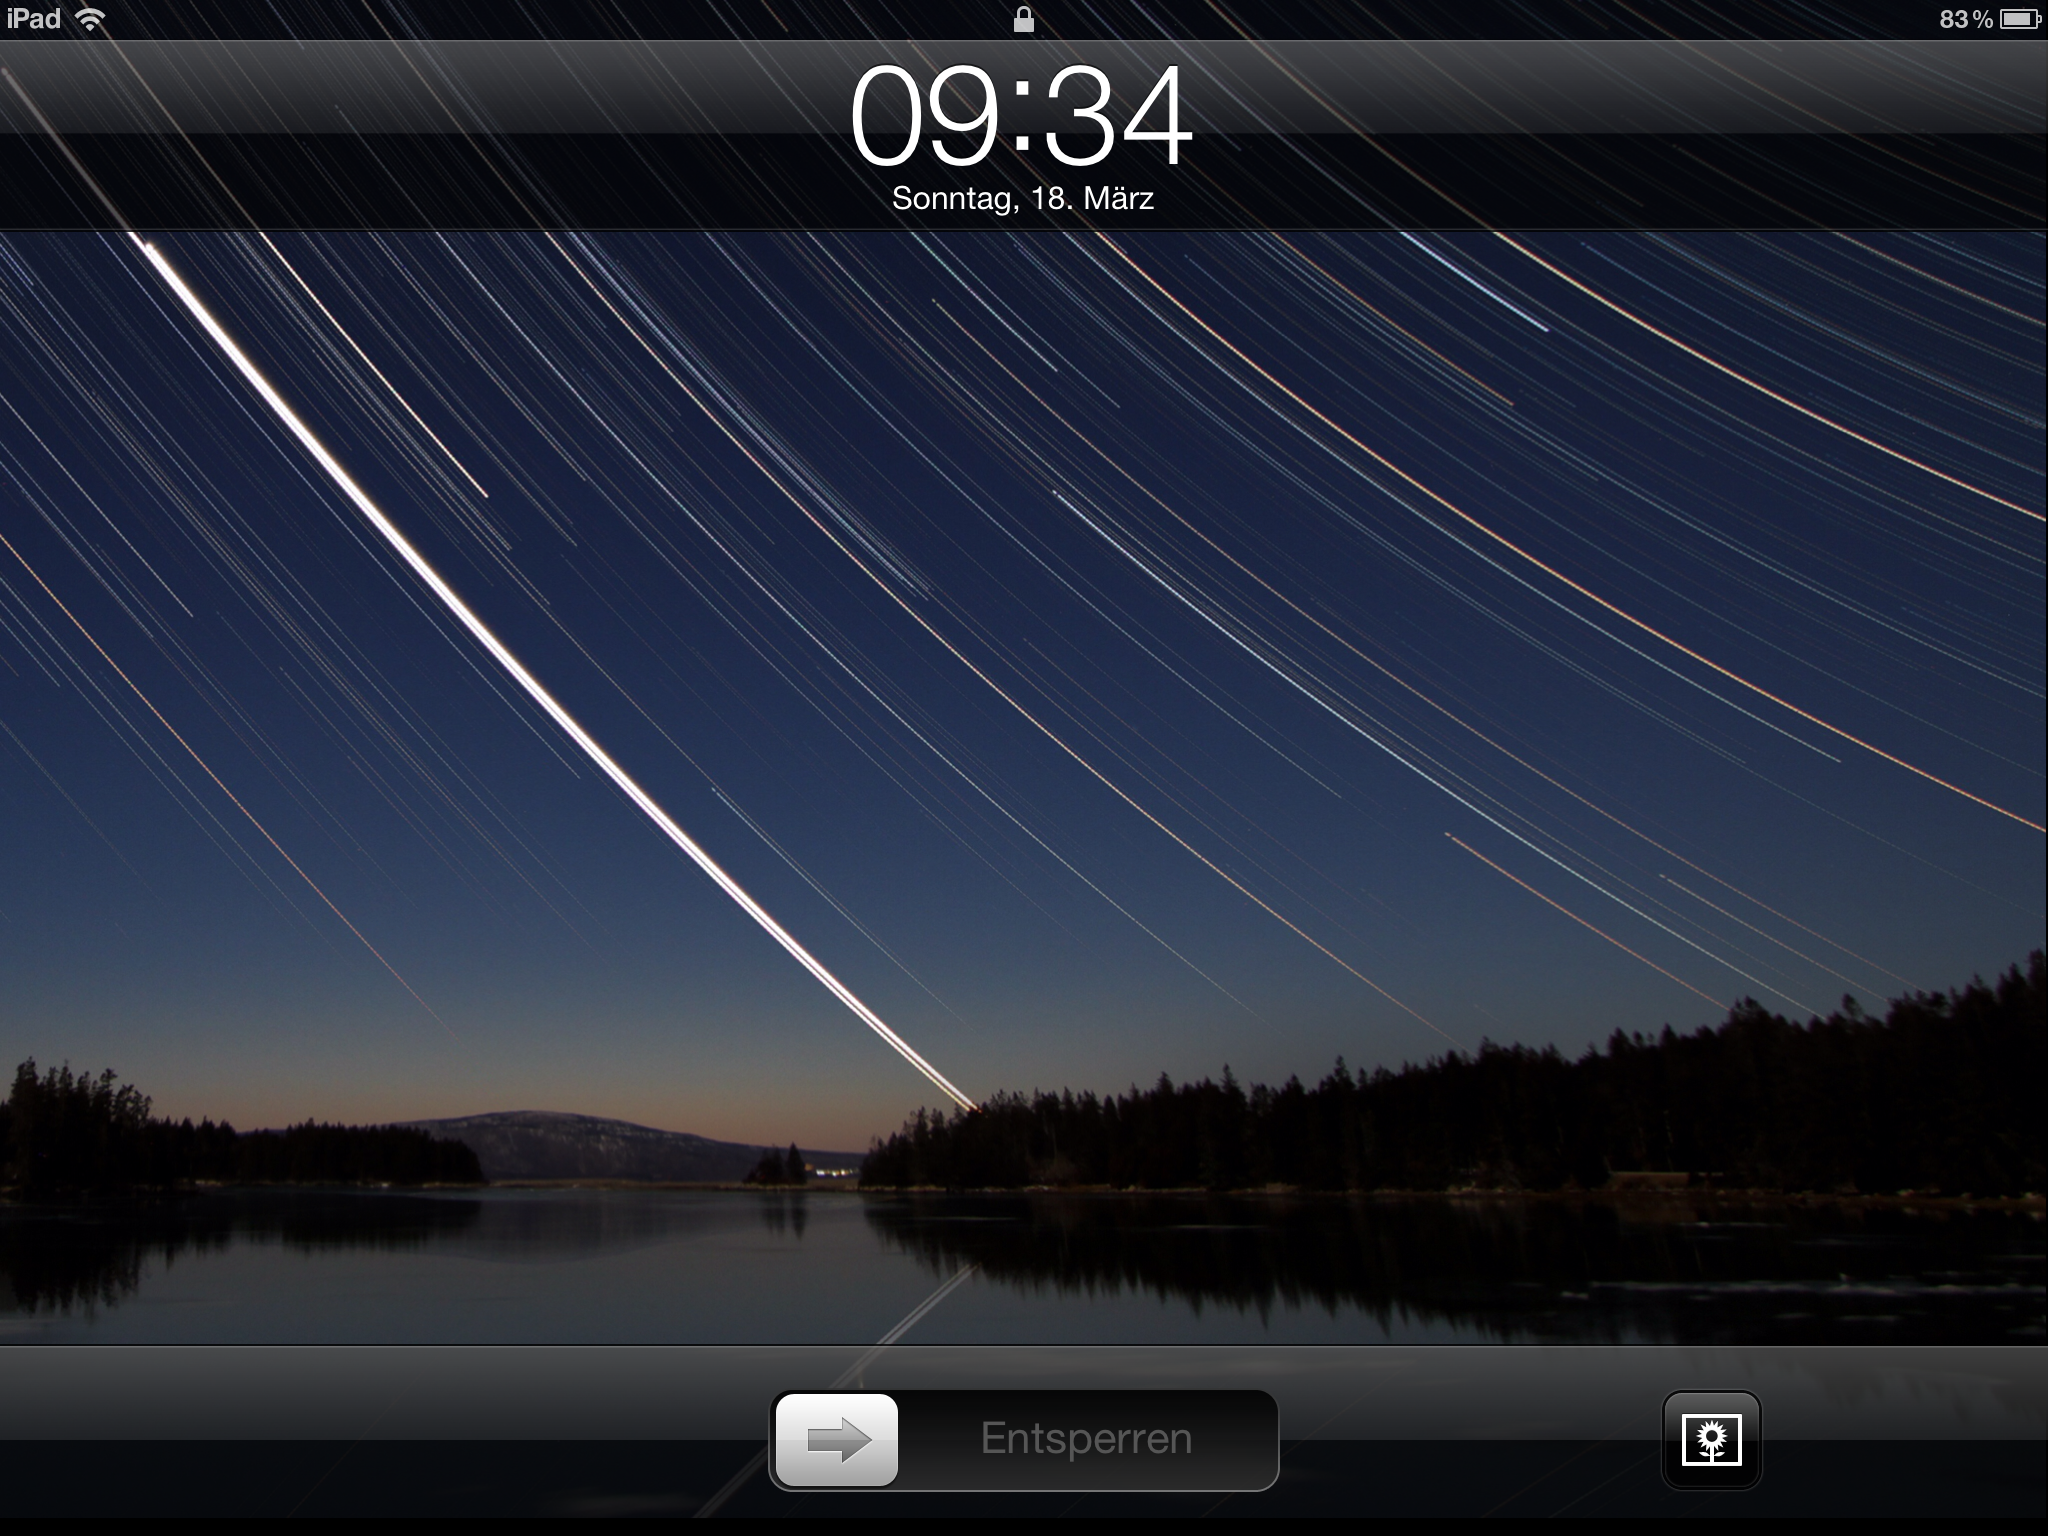 iPad 3 Wallpaper Stars